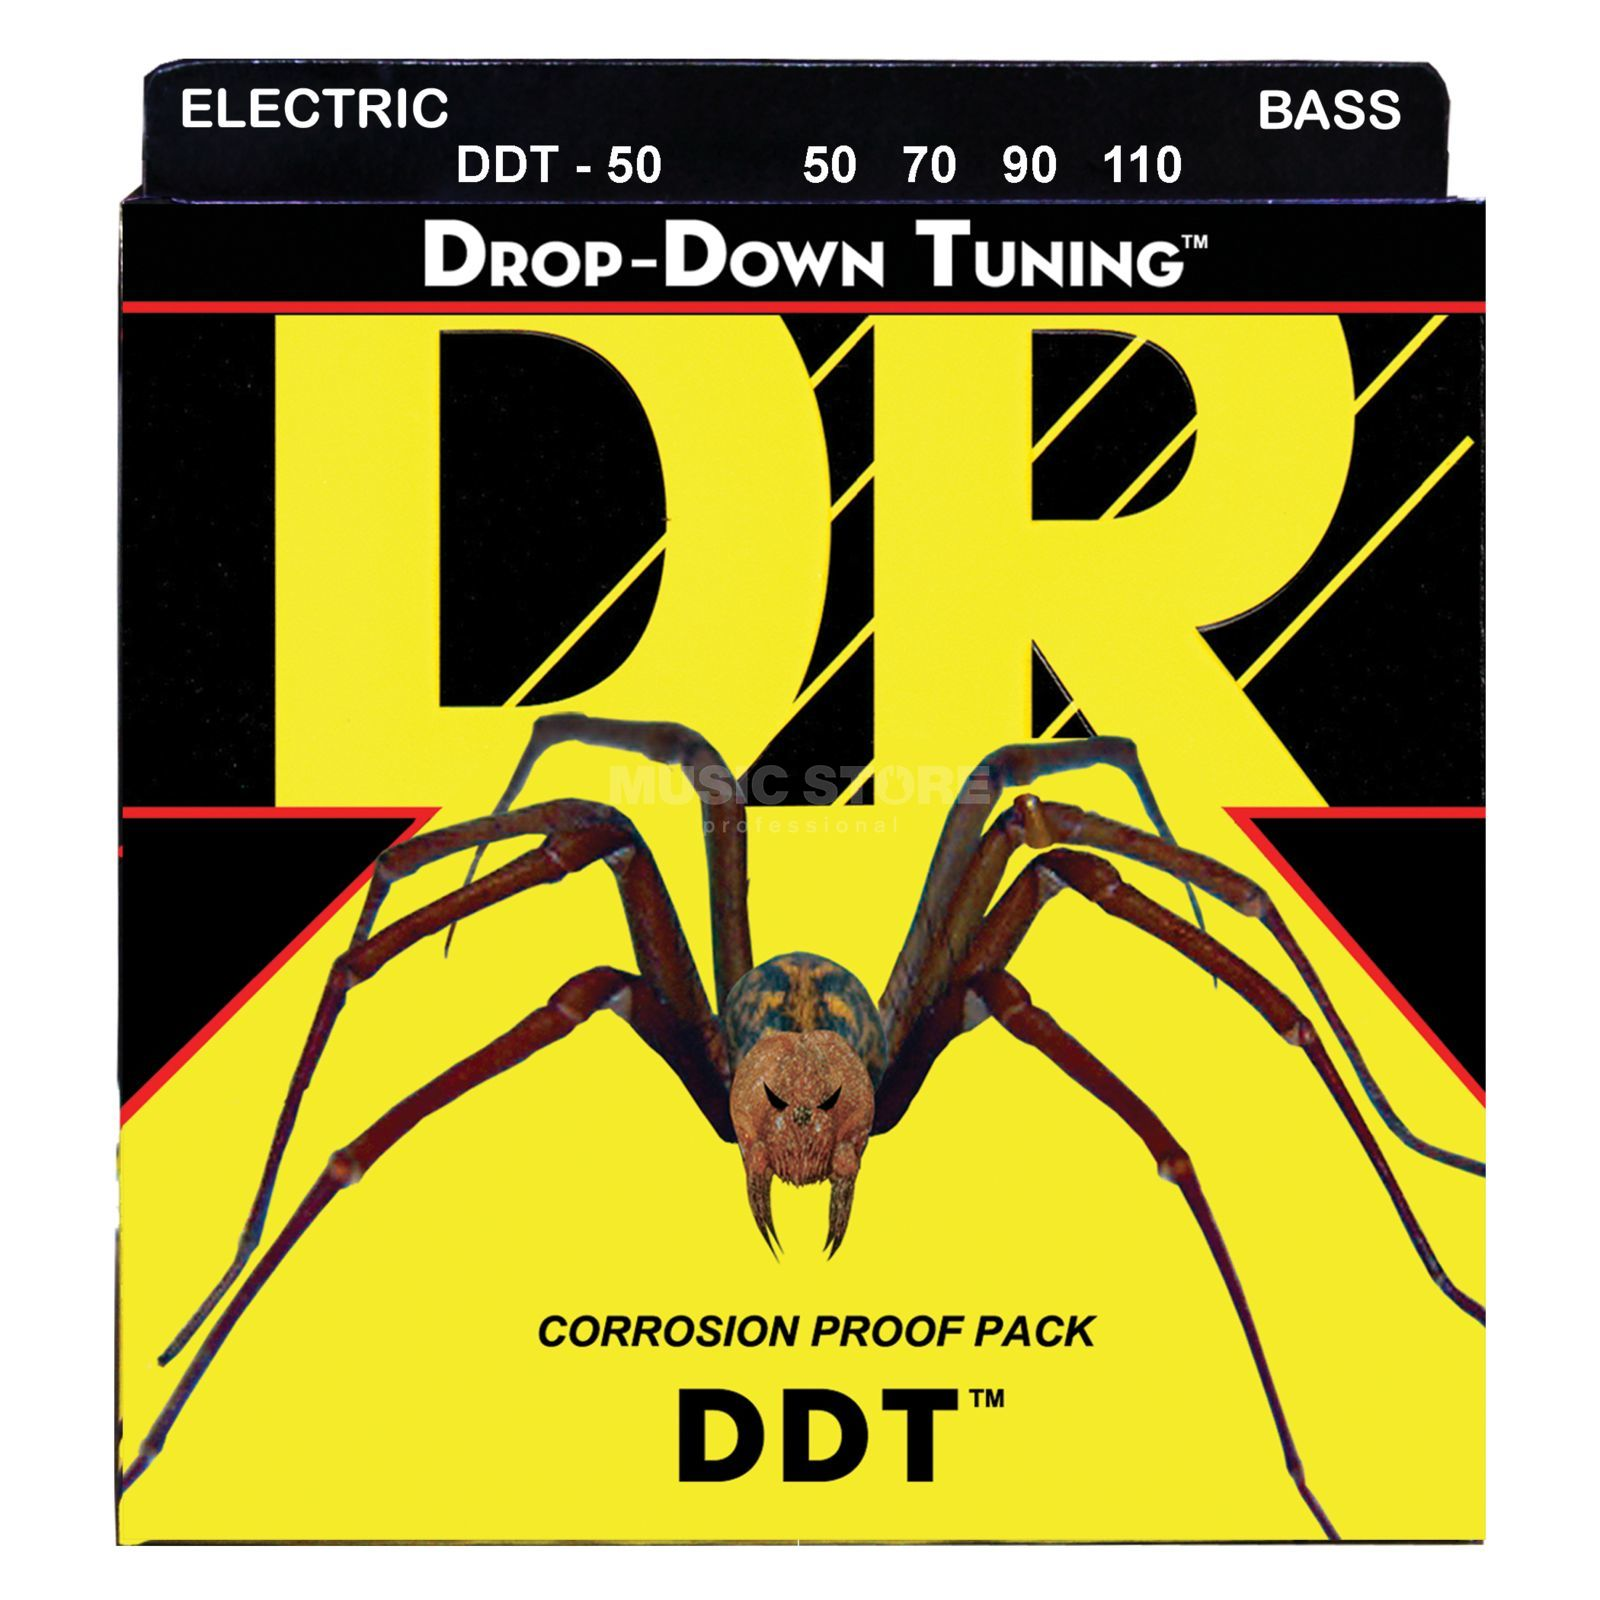 DR 4er Bass 50-110 Drop-Down Tuning DDT-50 Produktbild